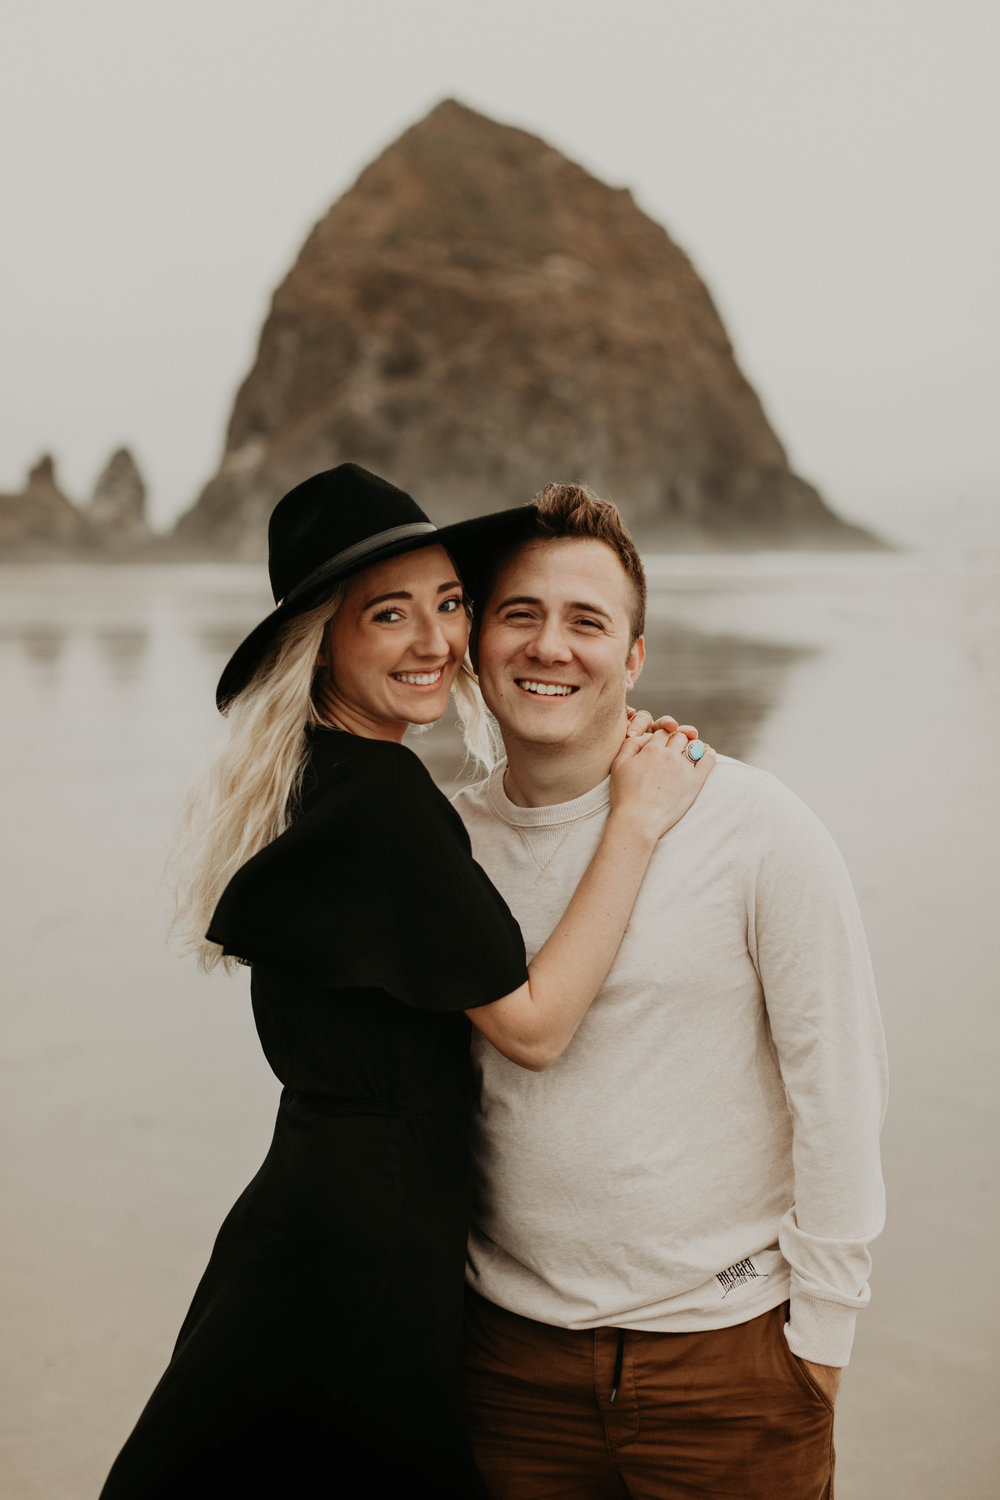 cannonbeachoregoncouplessession31.jpg